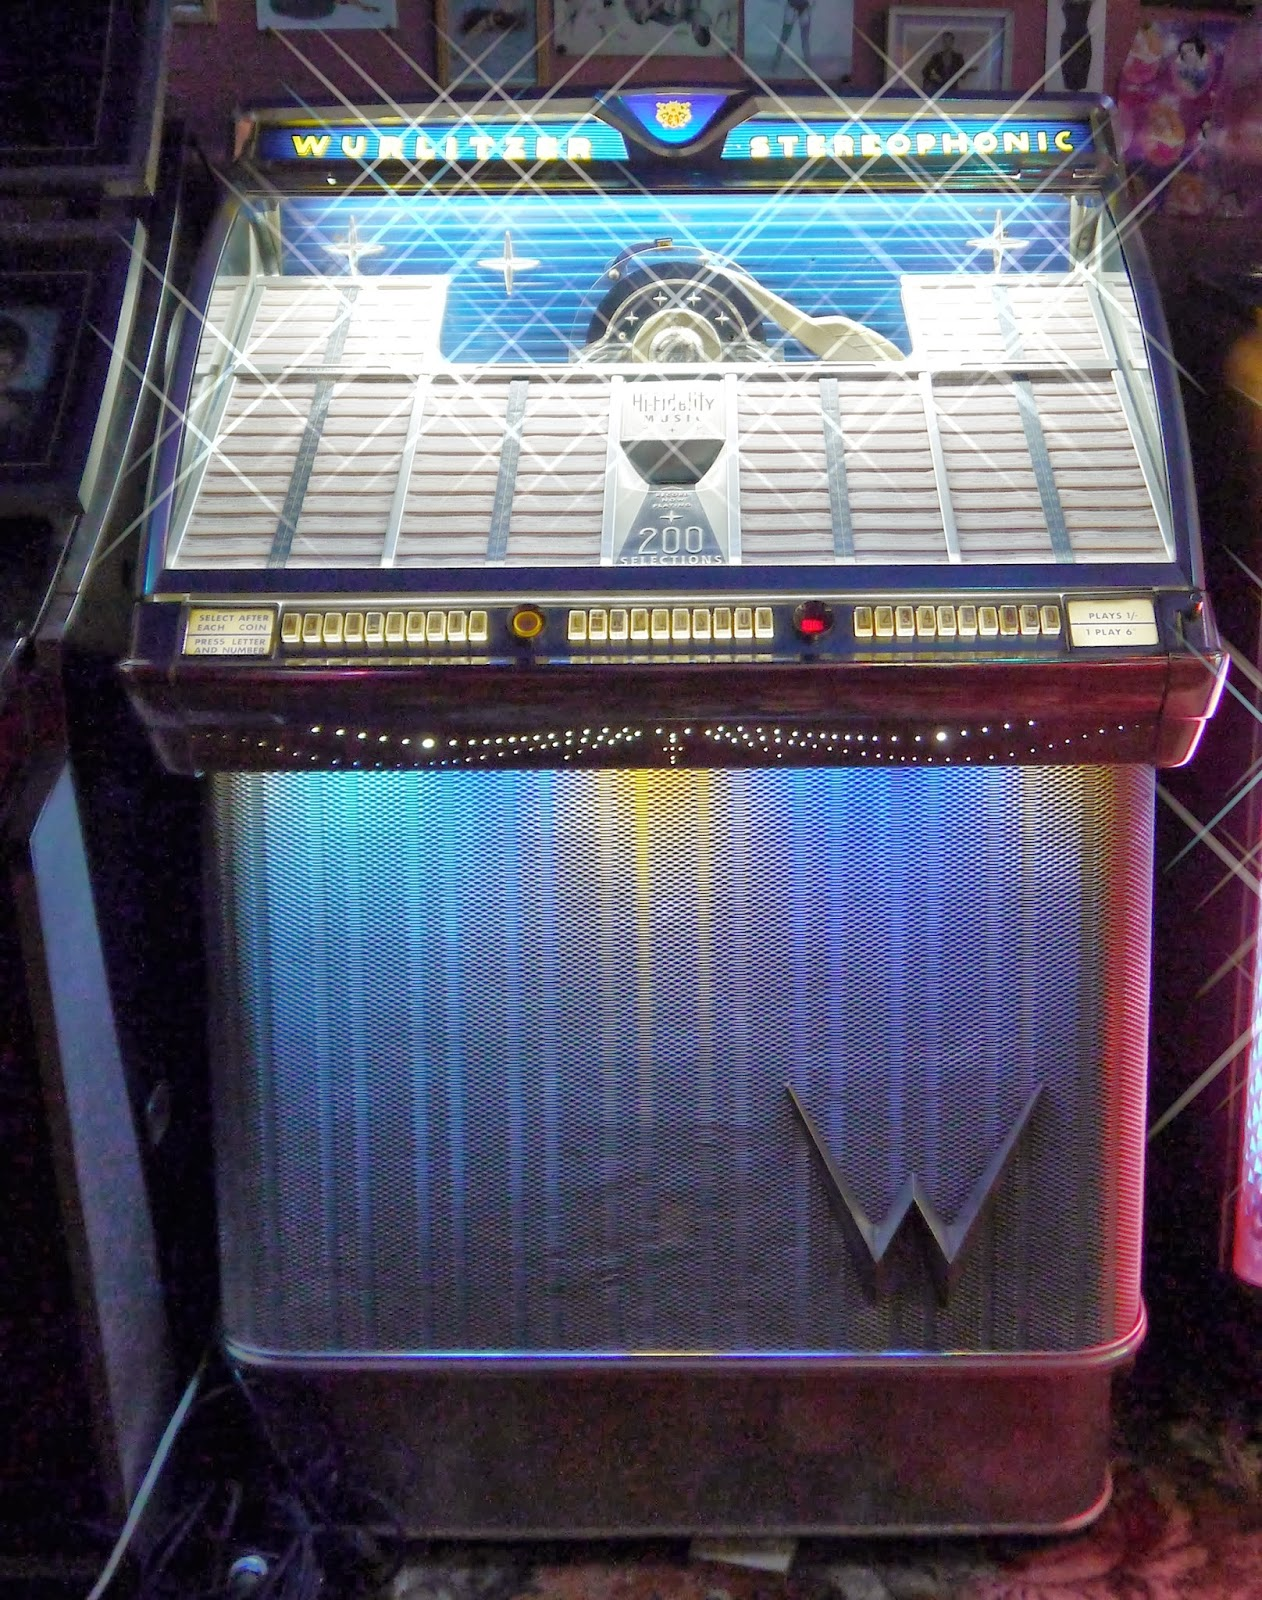 'Wurlitzer 2300' 1959 Jukebox